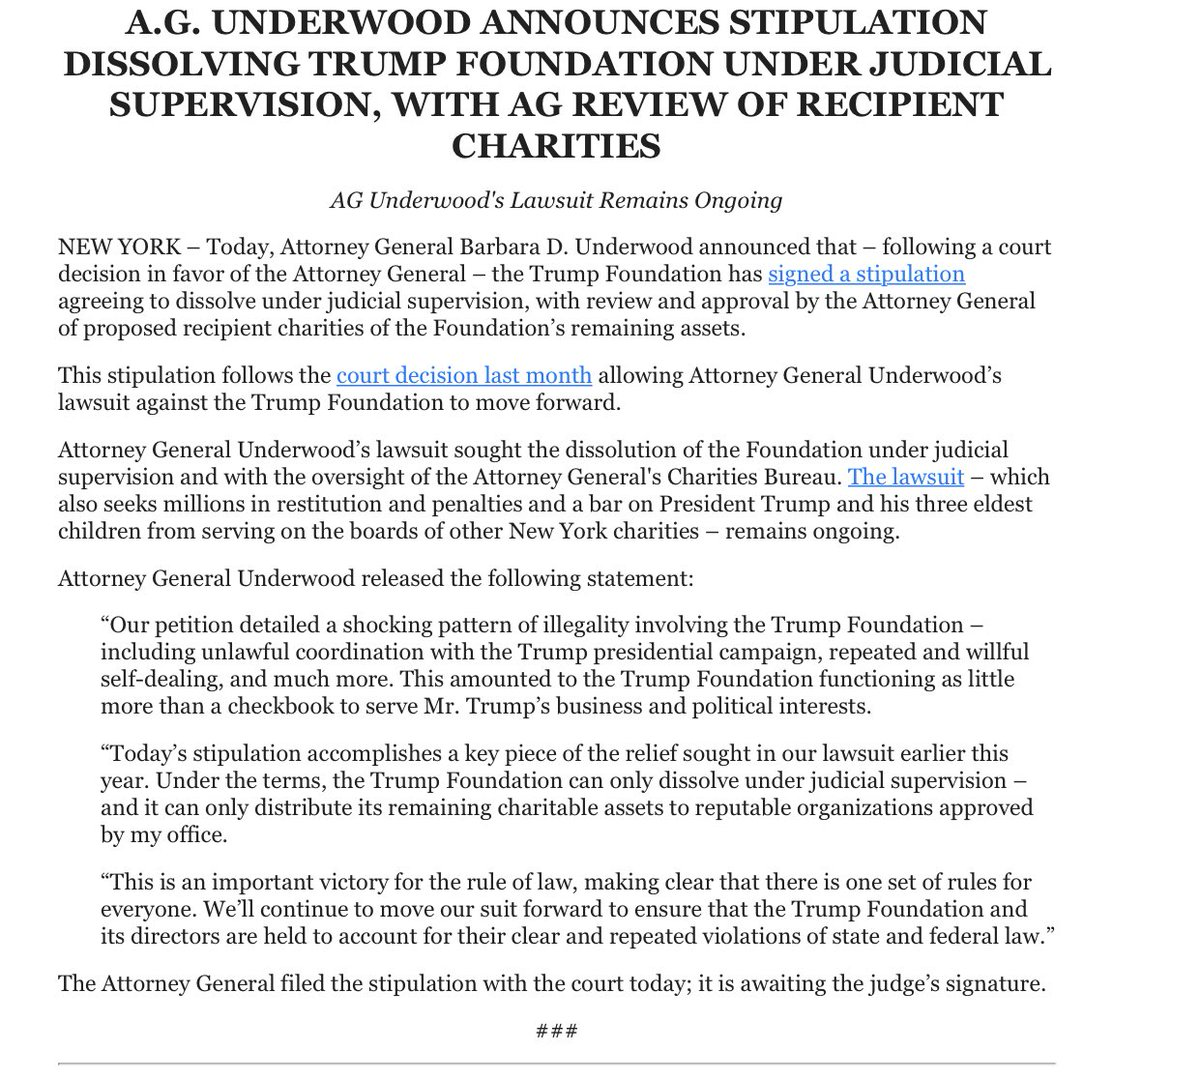 NEW: Announcement from NY AG, saying Trump Foundation will dissolve under judicial supervision.